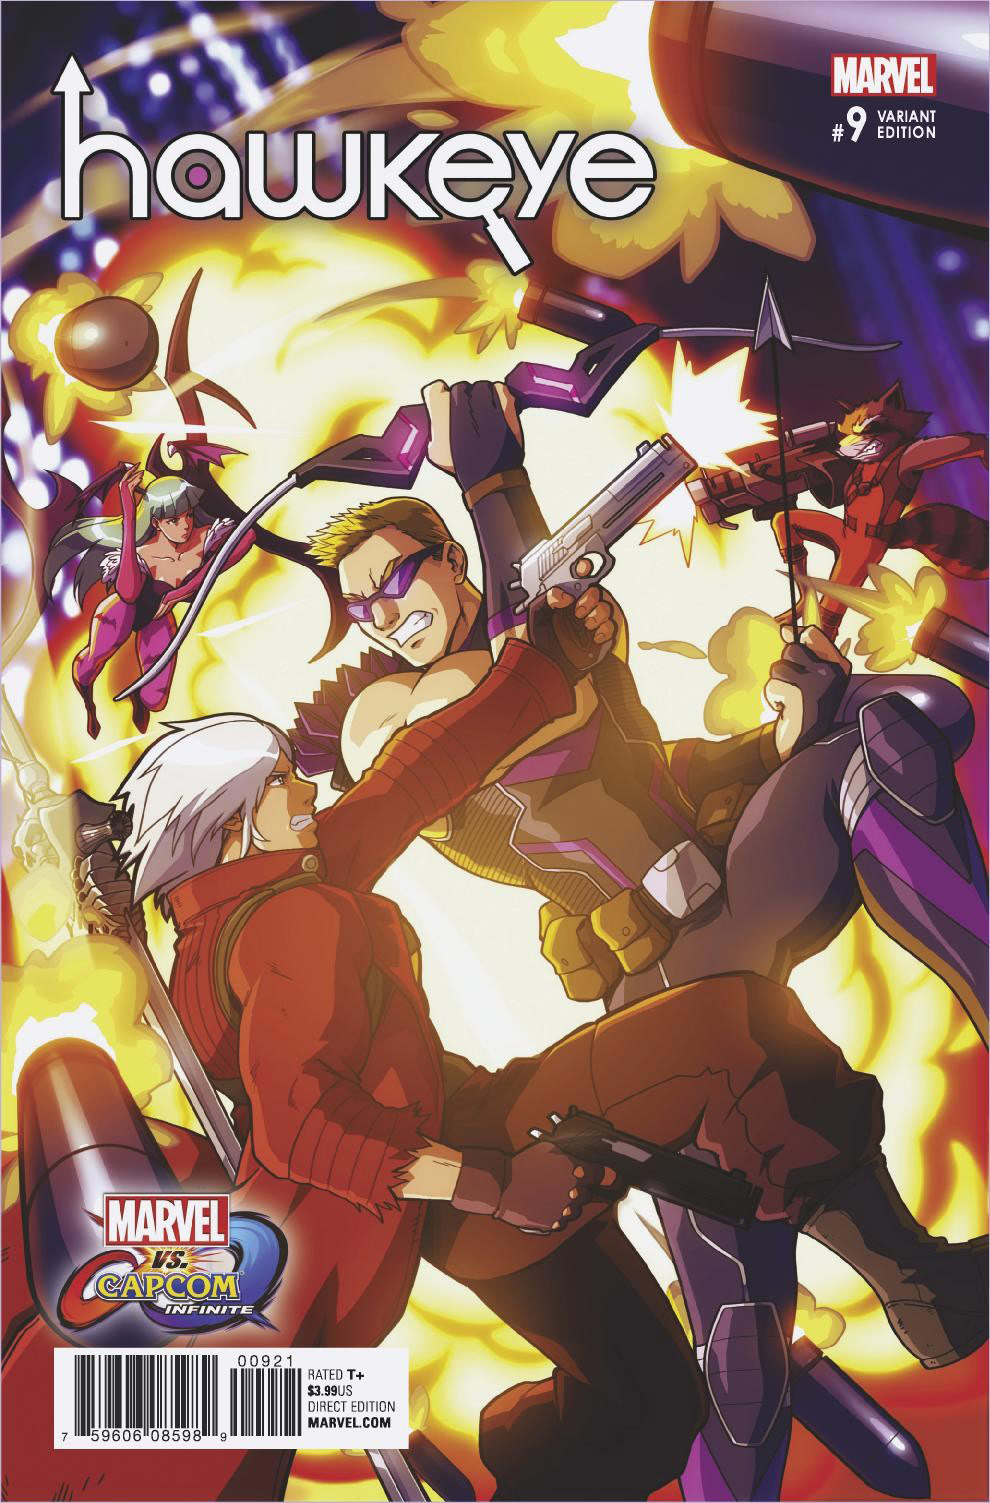 Marvel vs. Capcom: Infinite variant covers 3 out of 4 image gallery